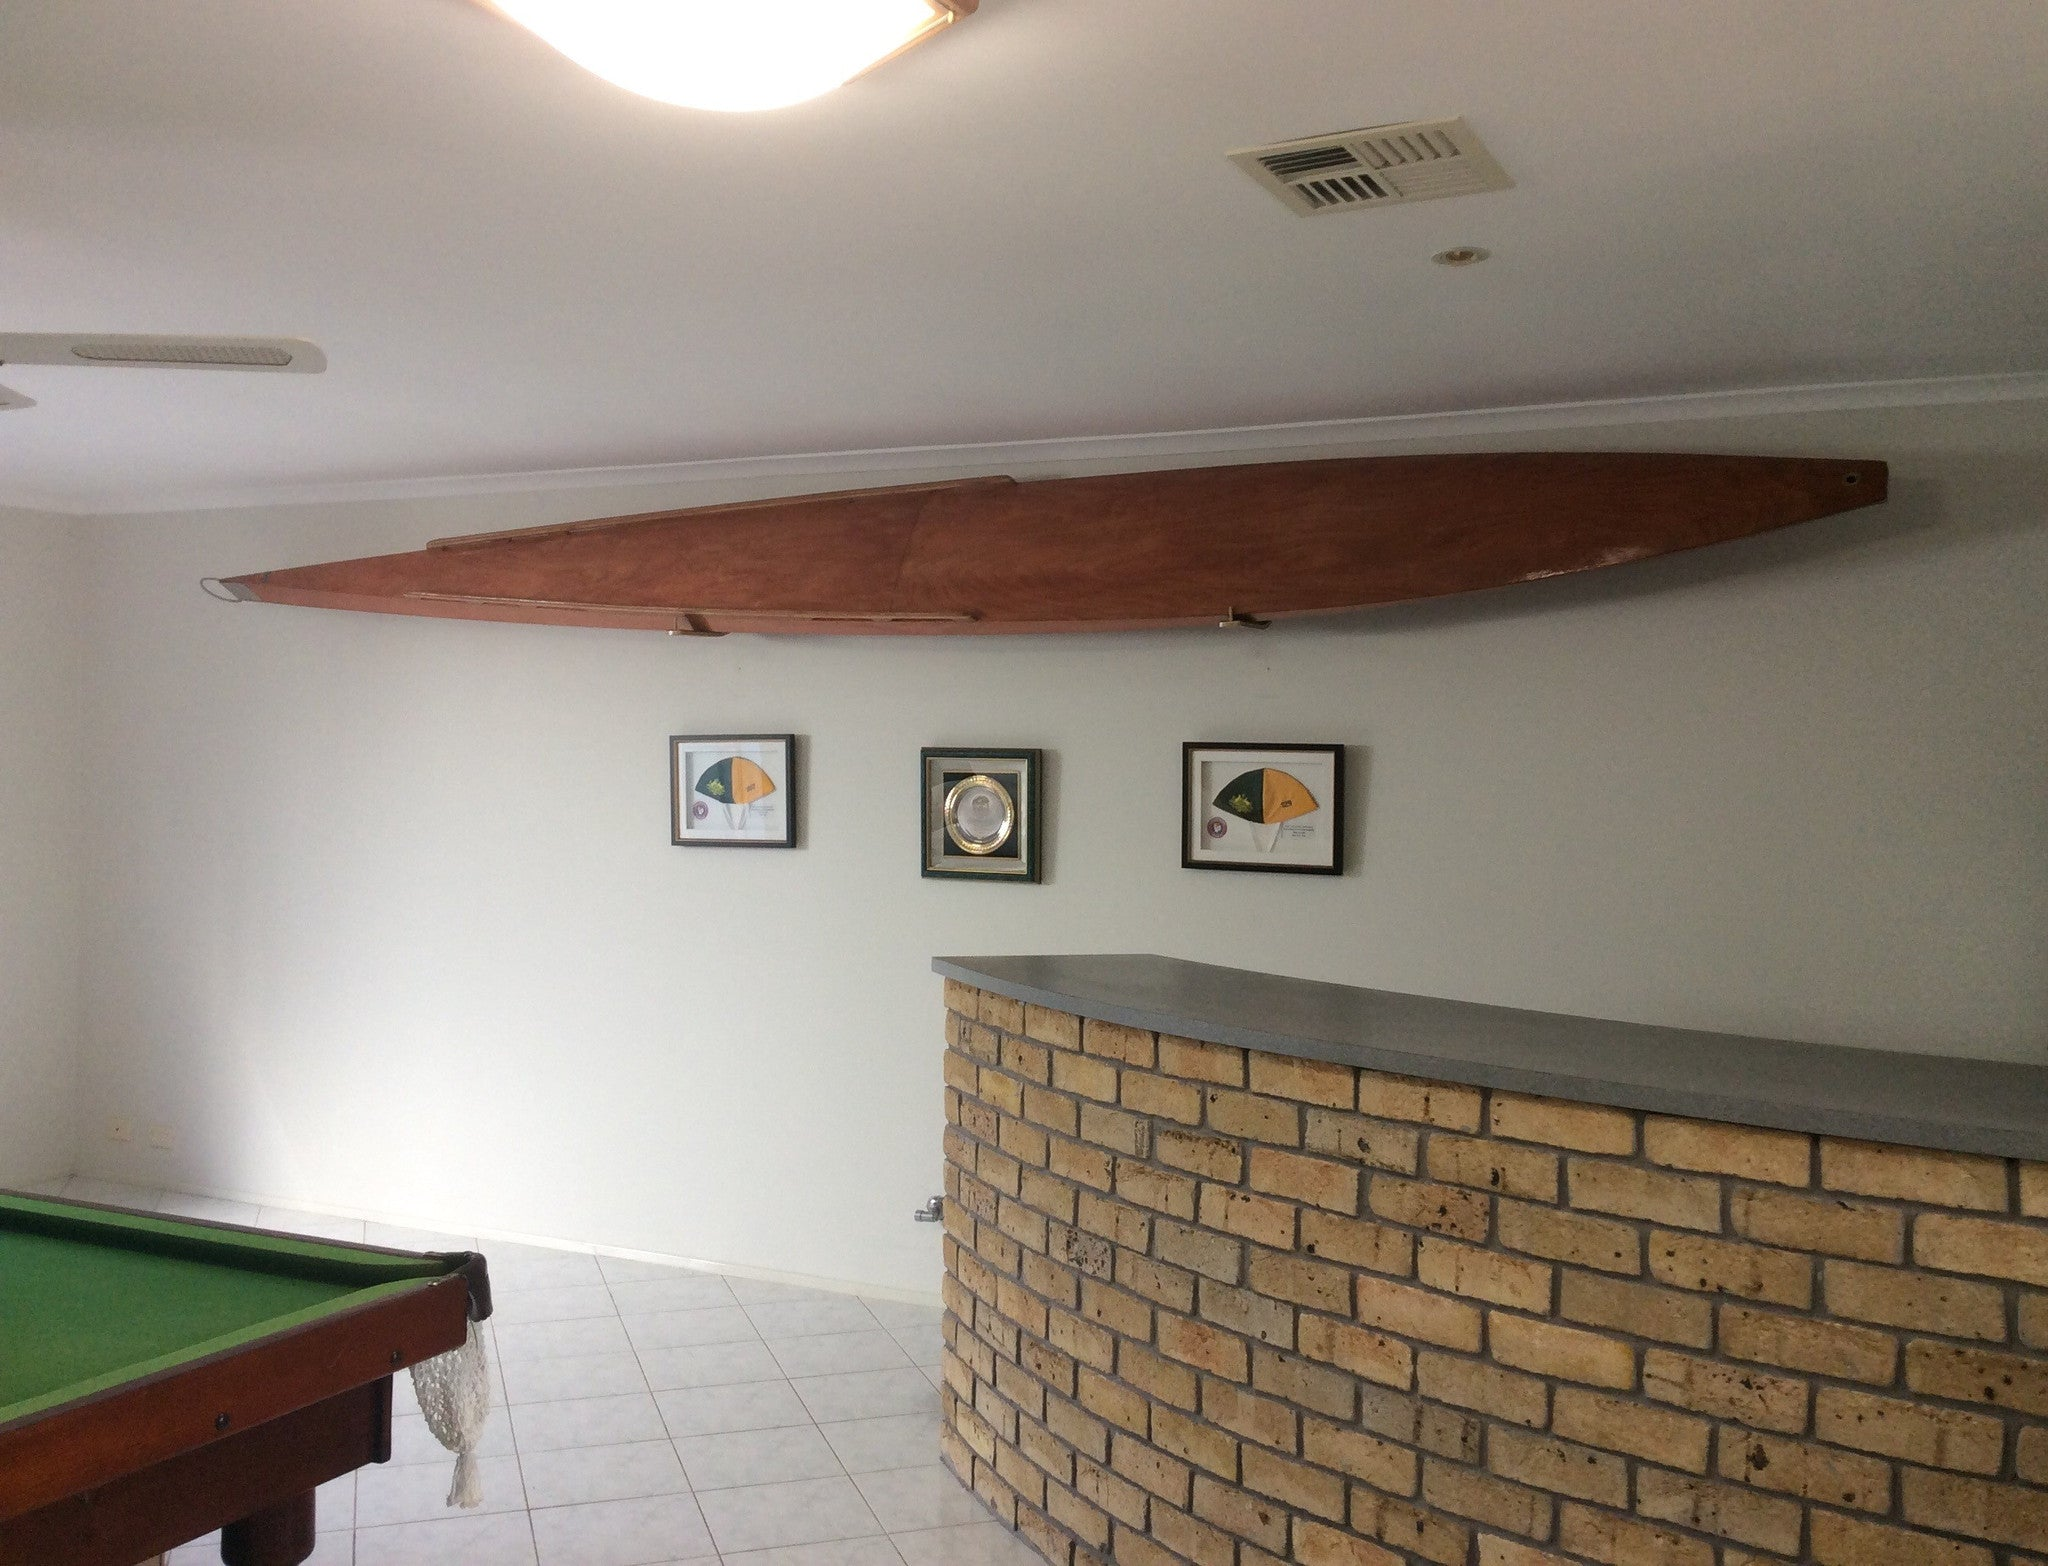 and systems tier save mount sup rack wall surfboard a sparehand p